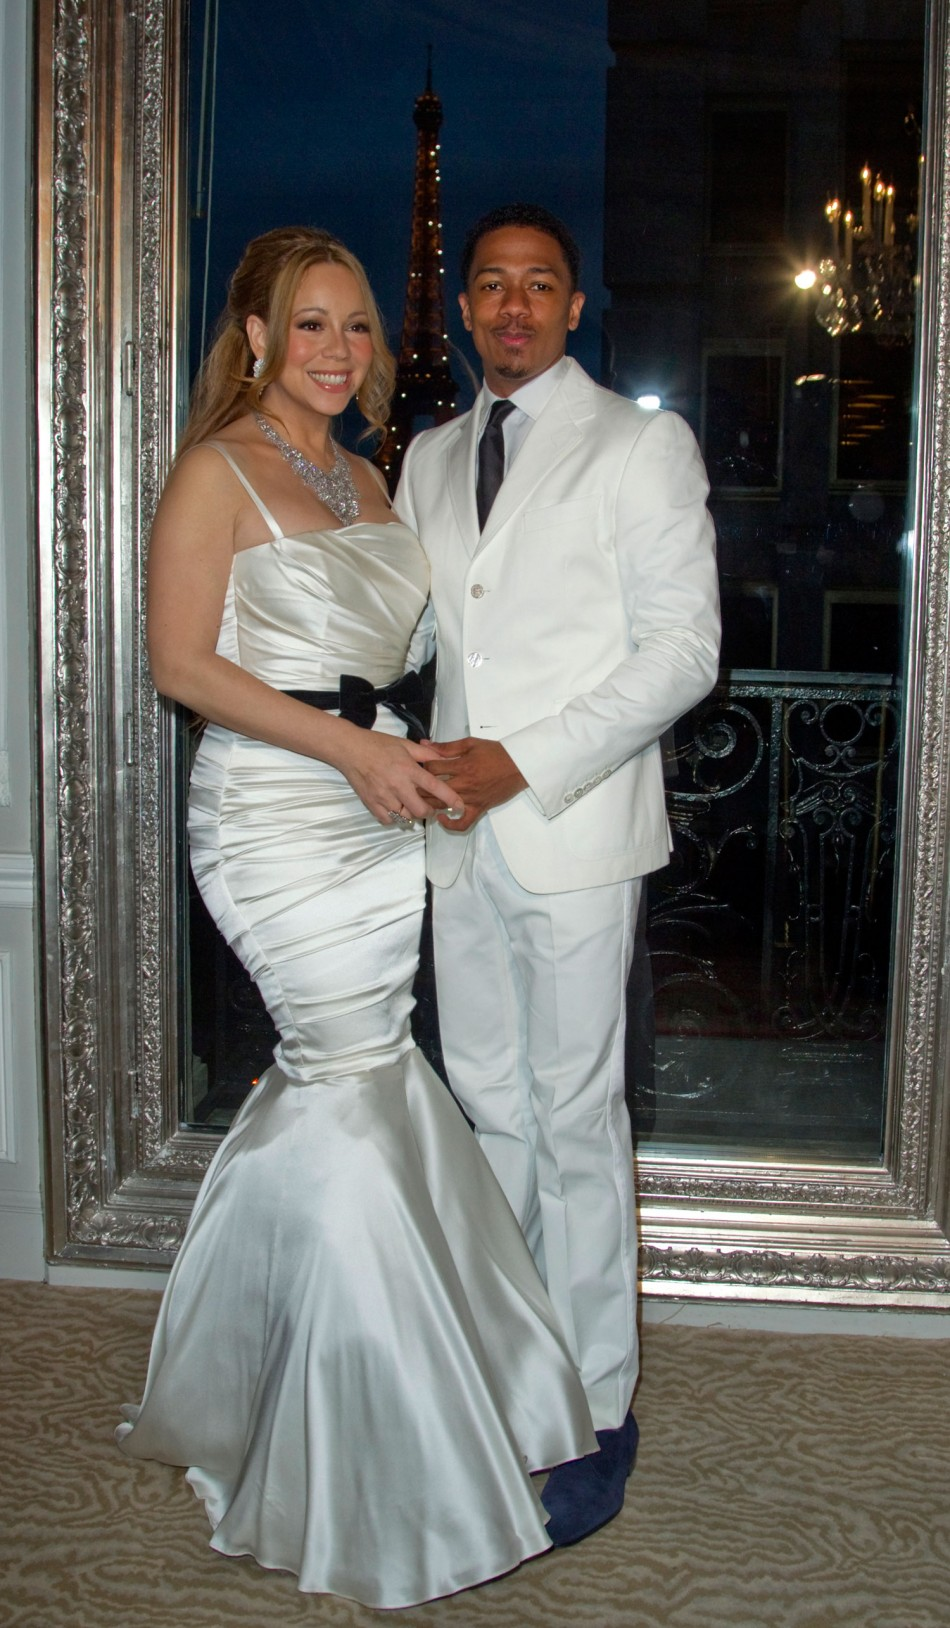 Mariah Carey And Nick Cannon Say 'I Do' For Fourth Time